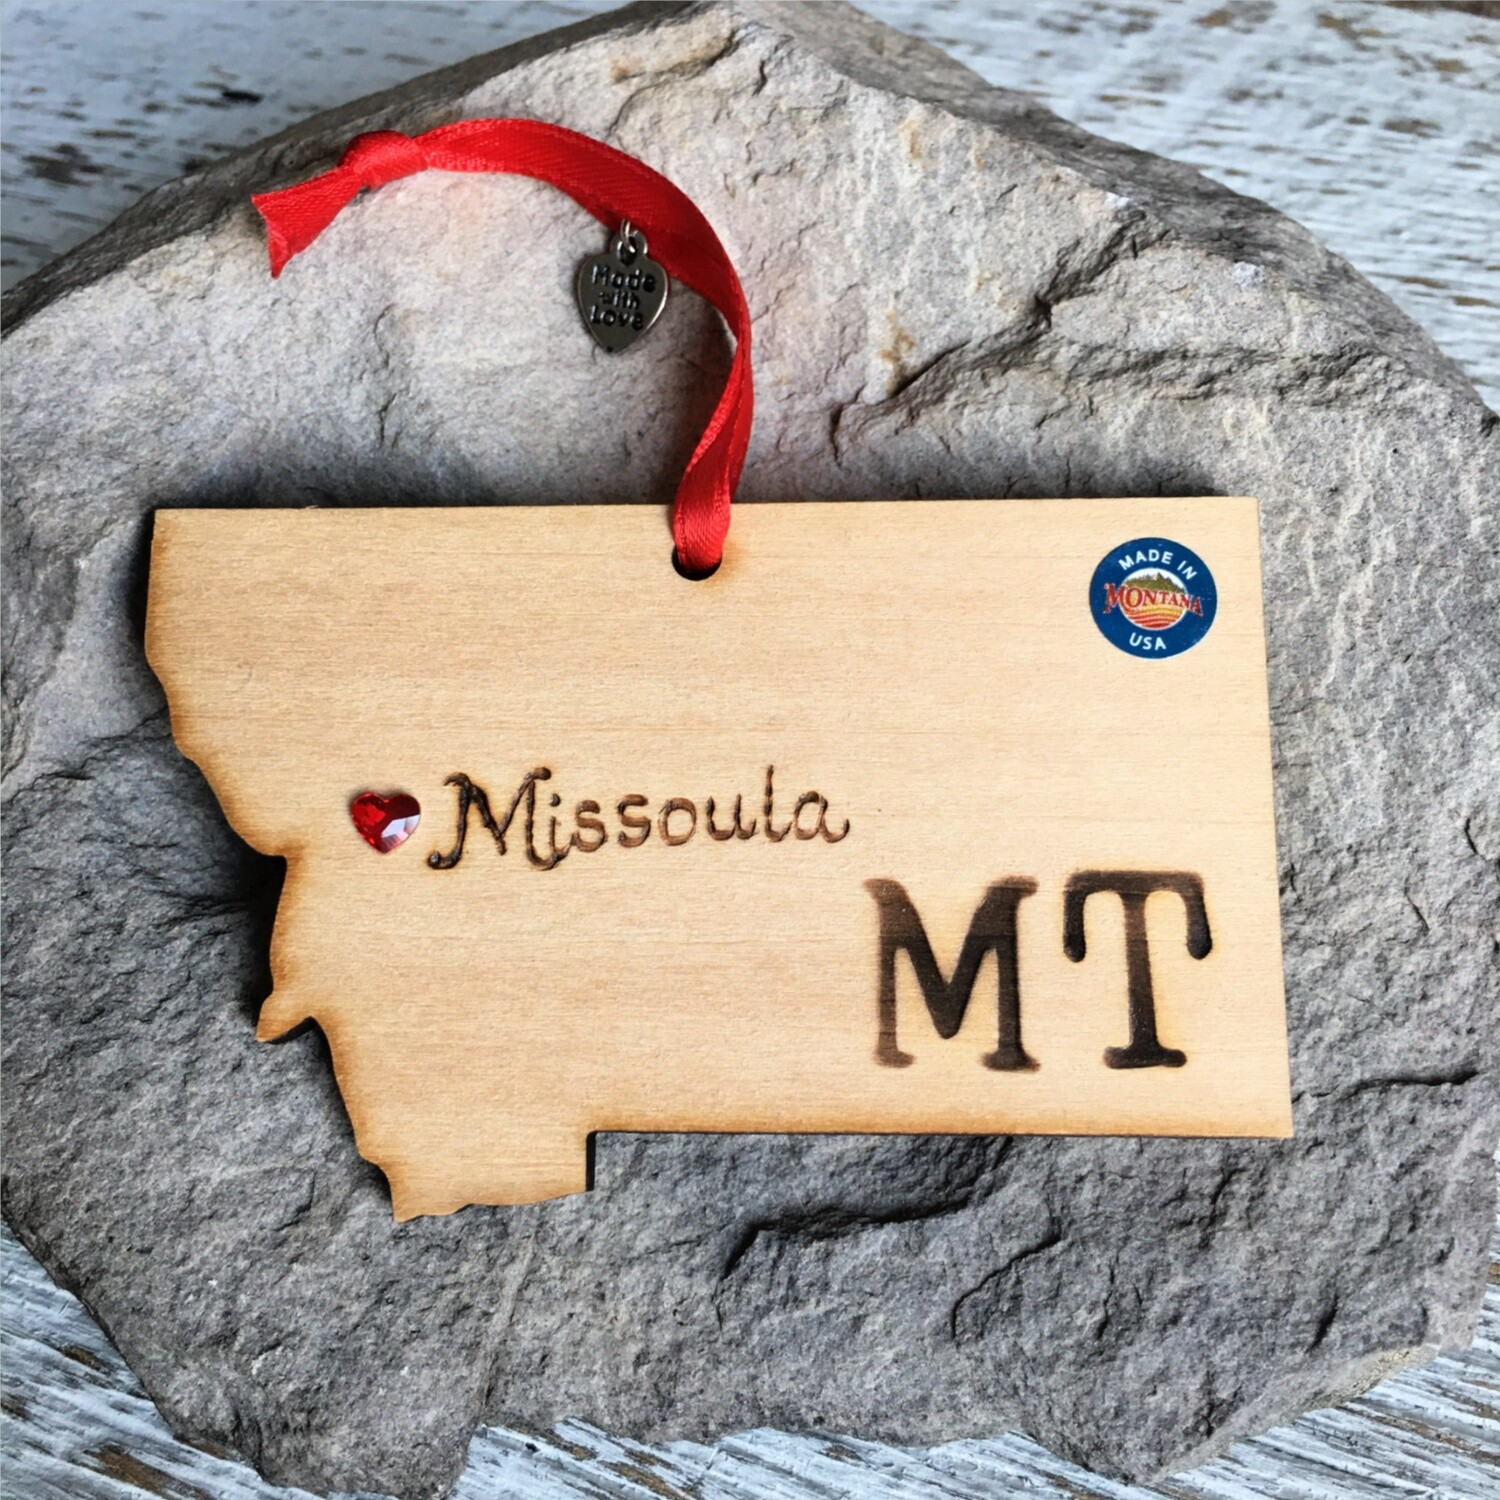 40-20 Missoula MT Ornament